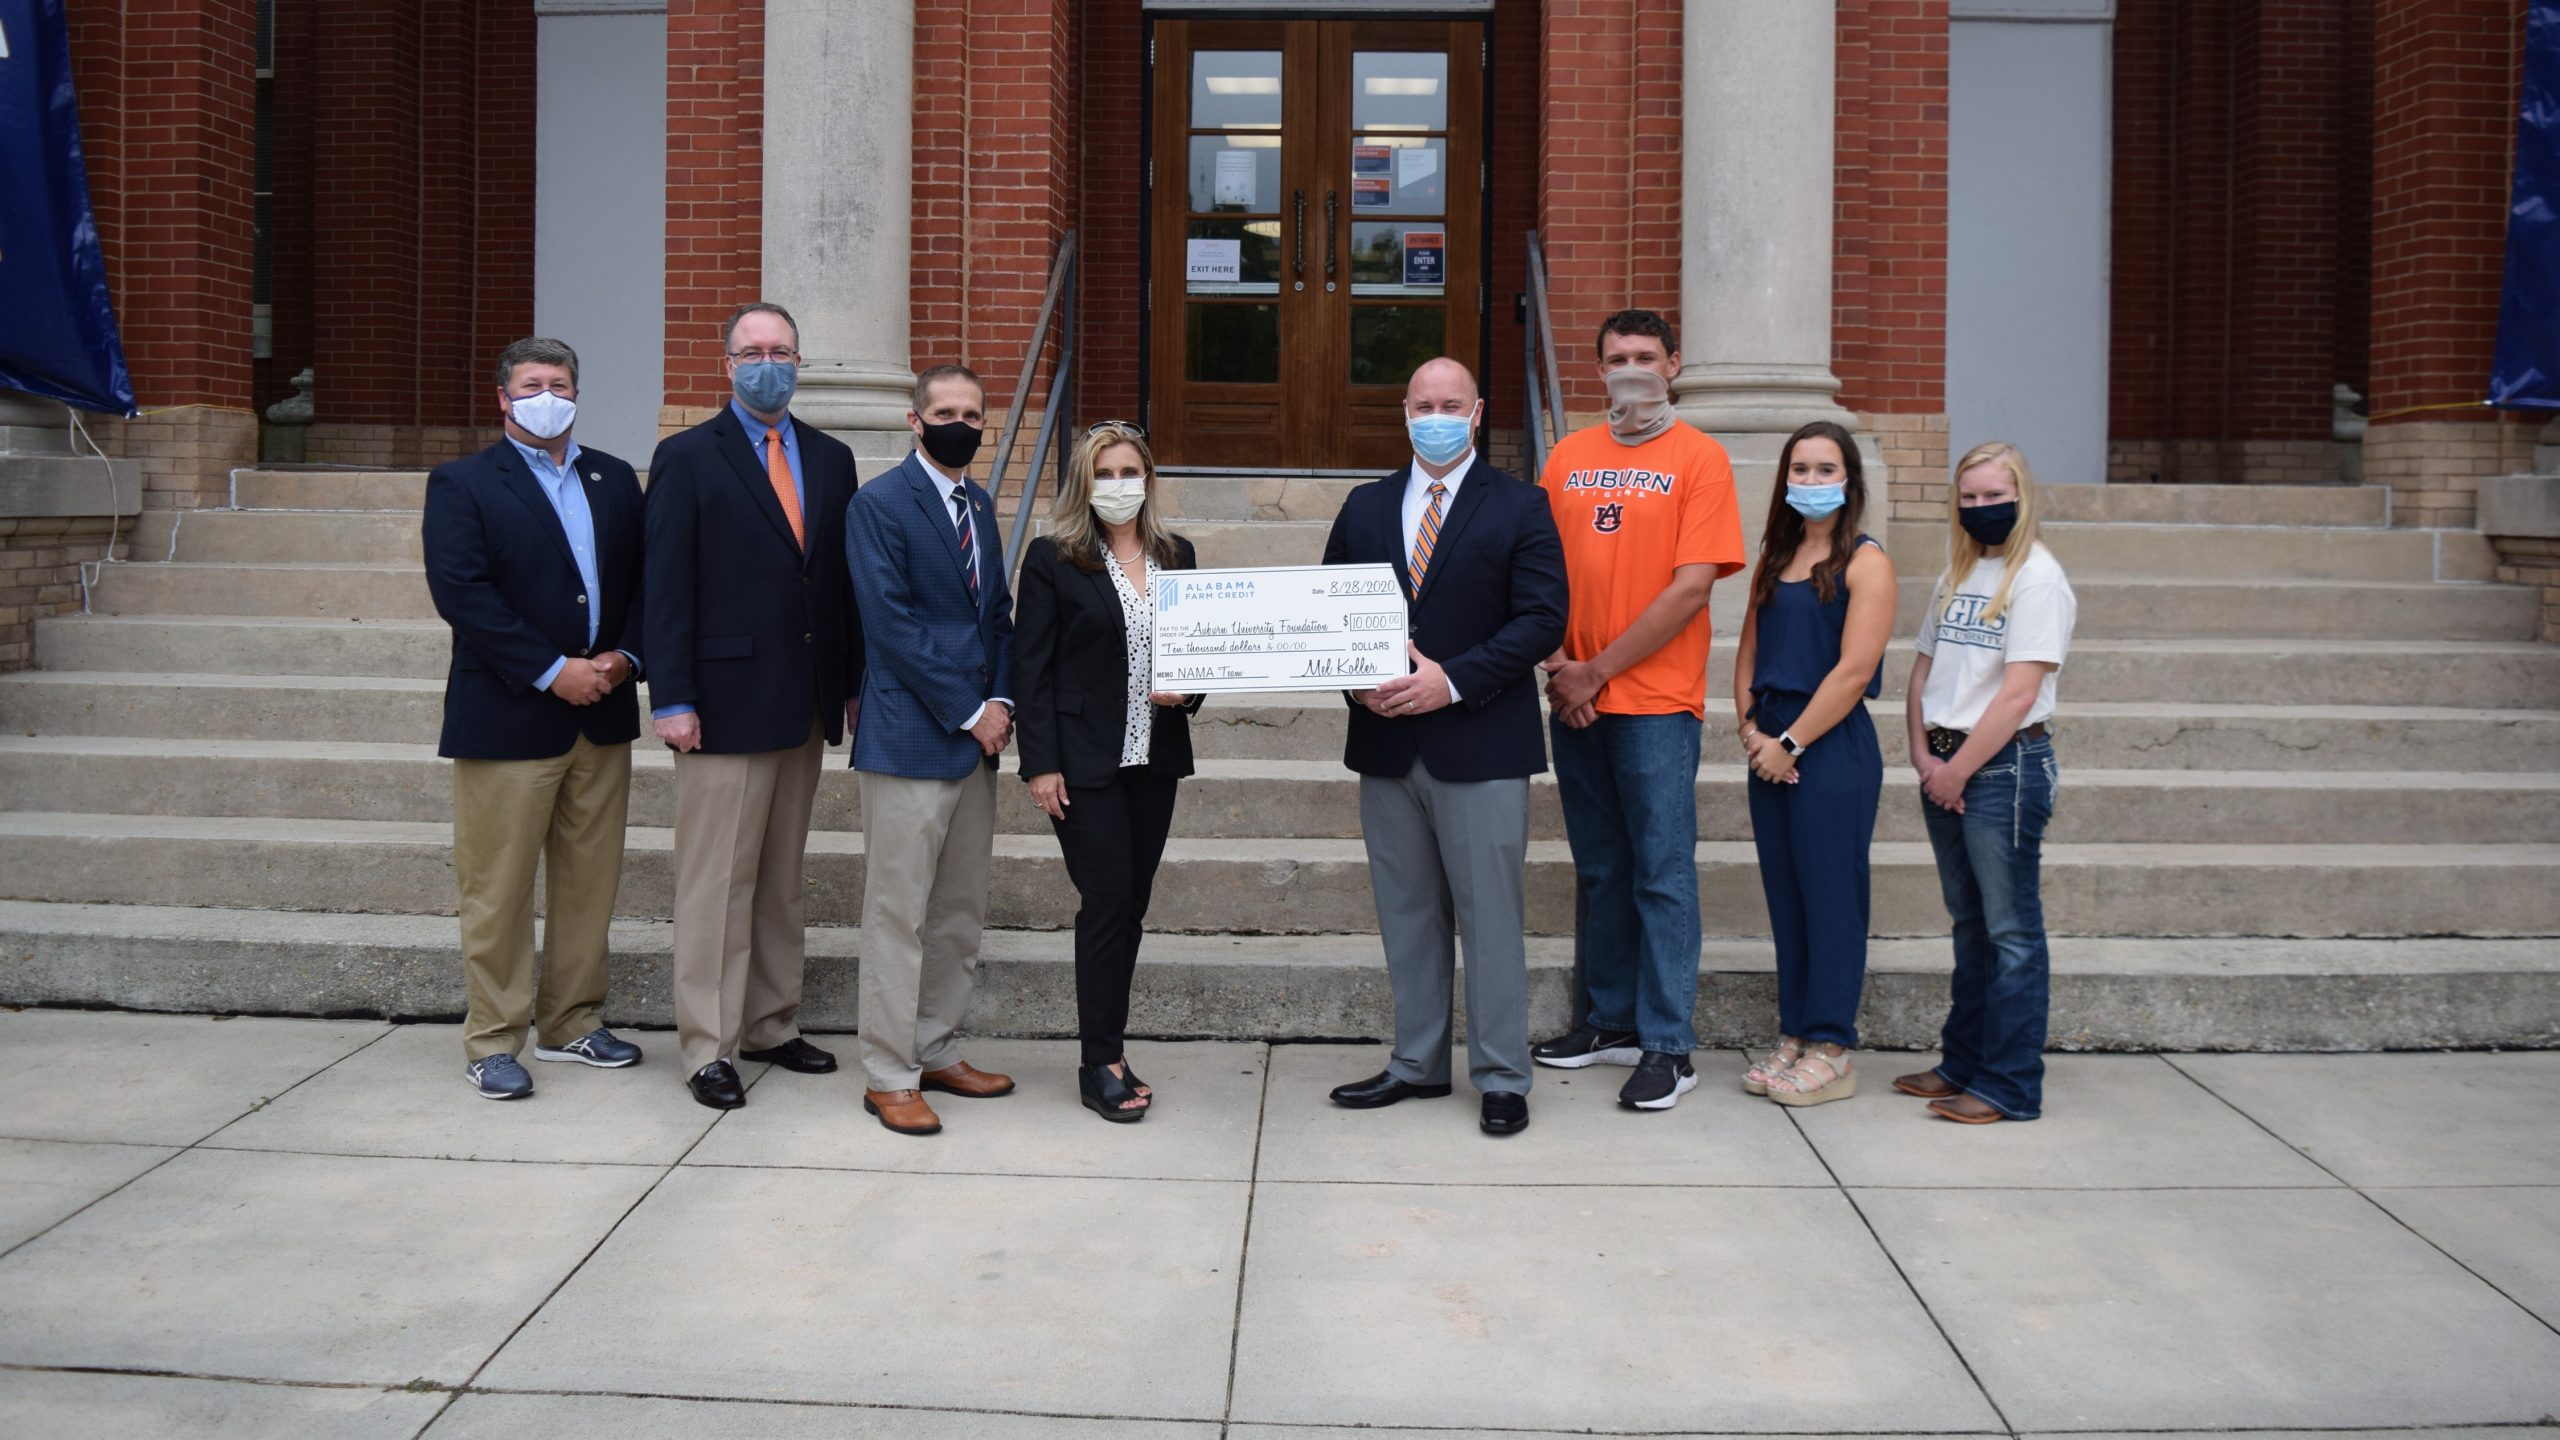 Alabama Farm Credit presents funding check to College of Agriculture, NAMA chapter in front of Auburn University Comer Hall, Alabama, USA